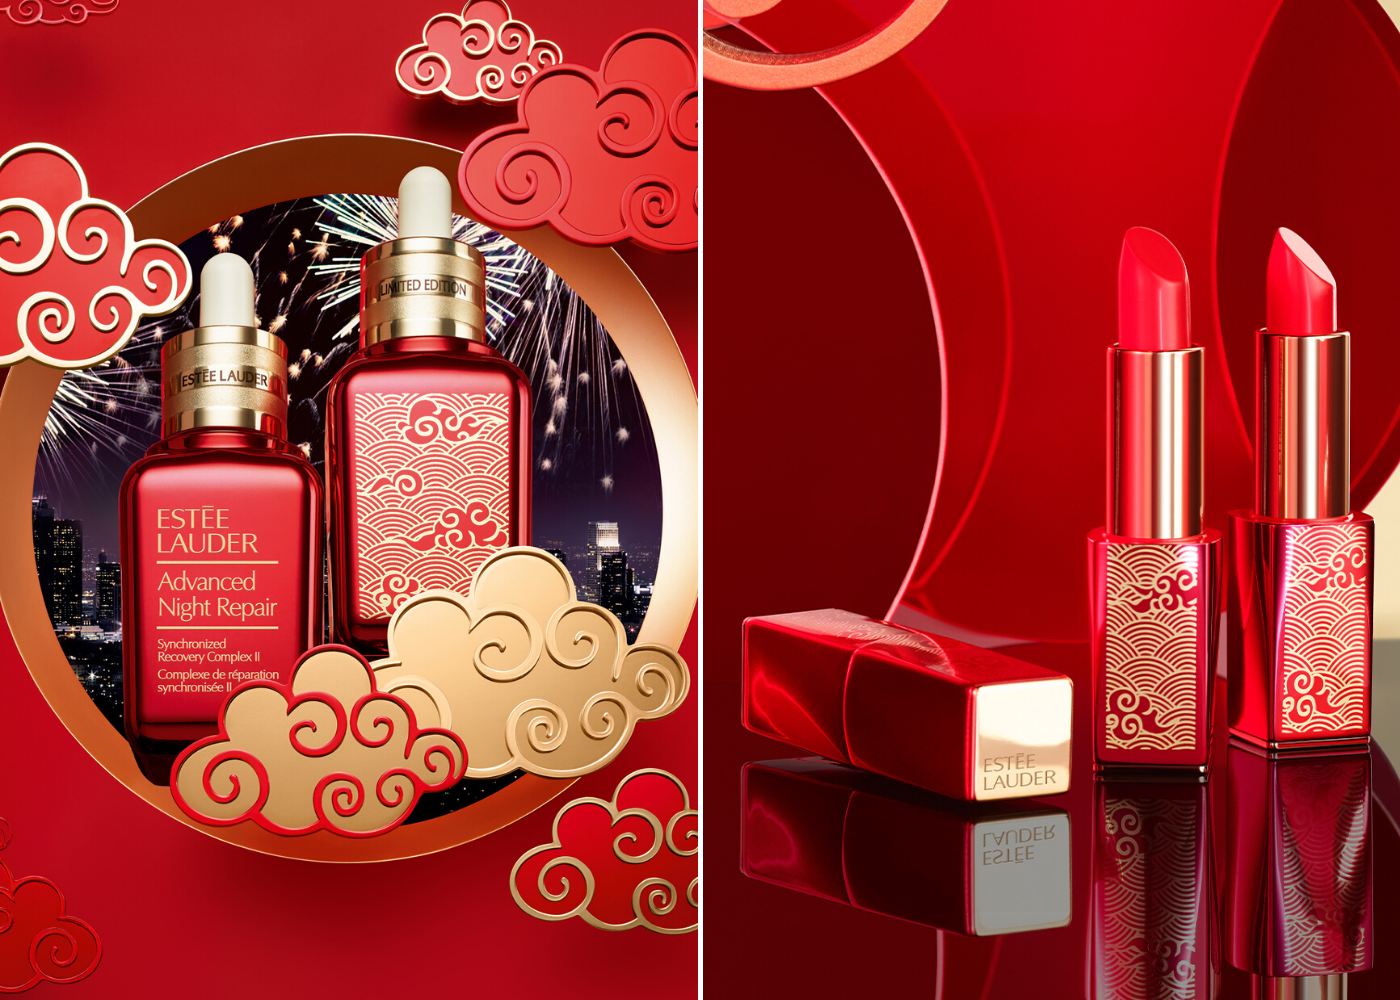 Estee Lauder Limited Edition CNY beauty collection